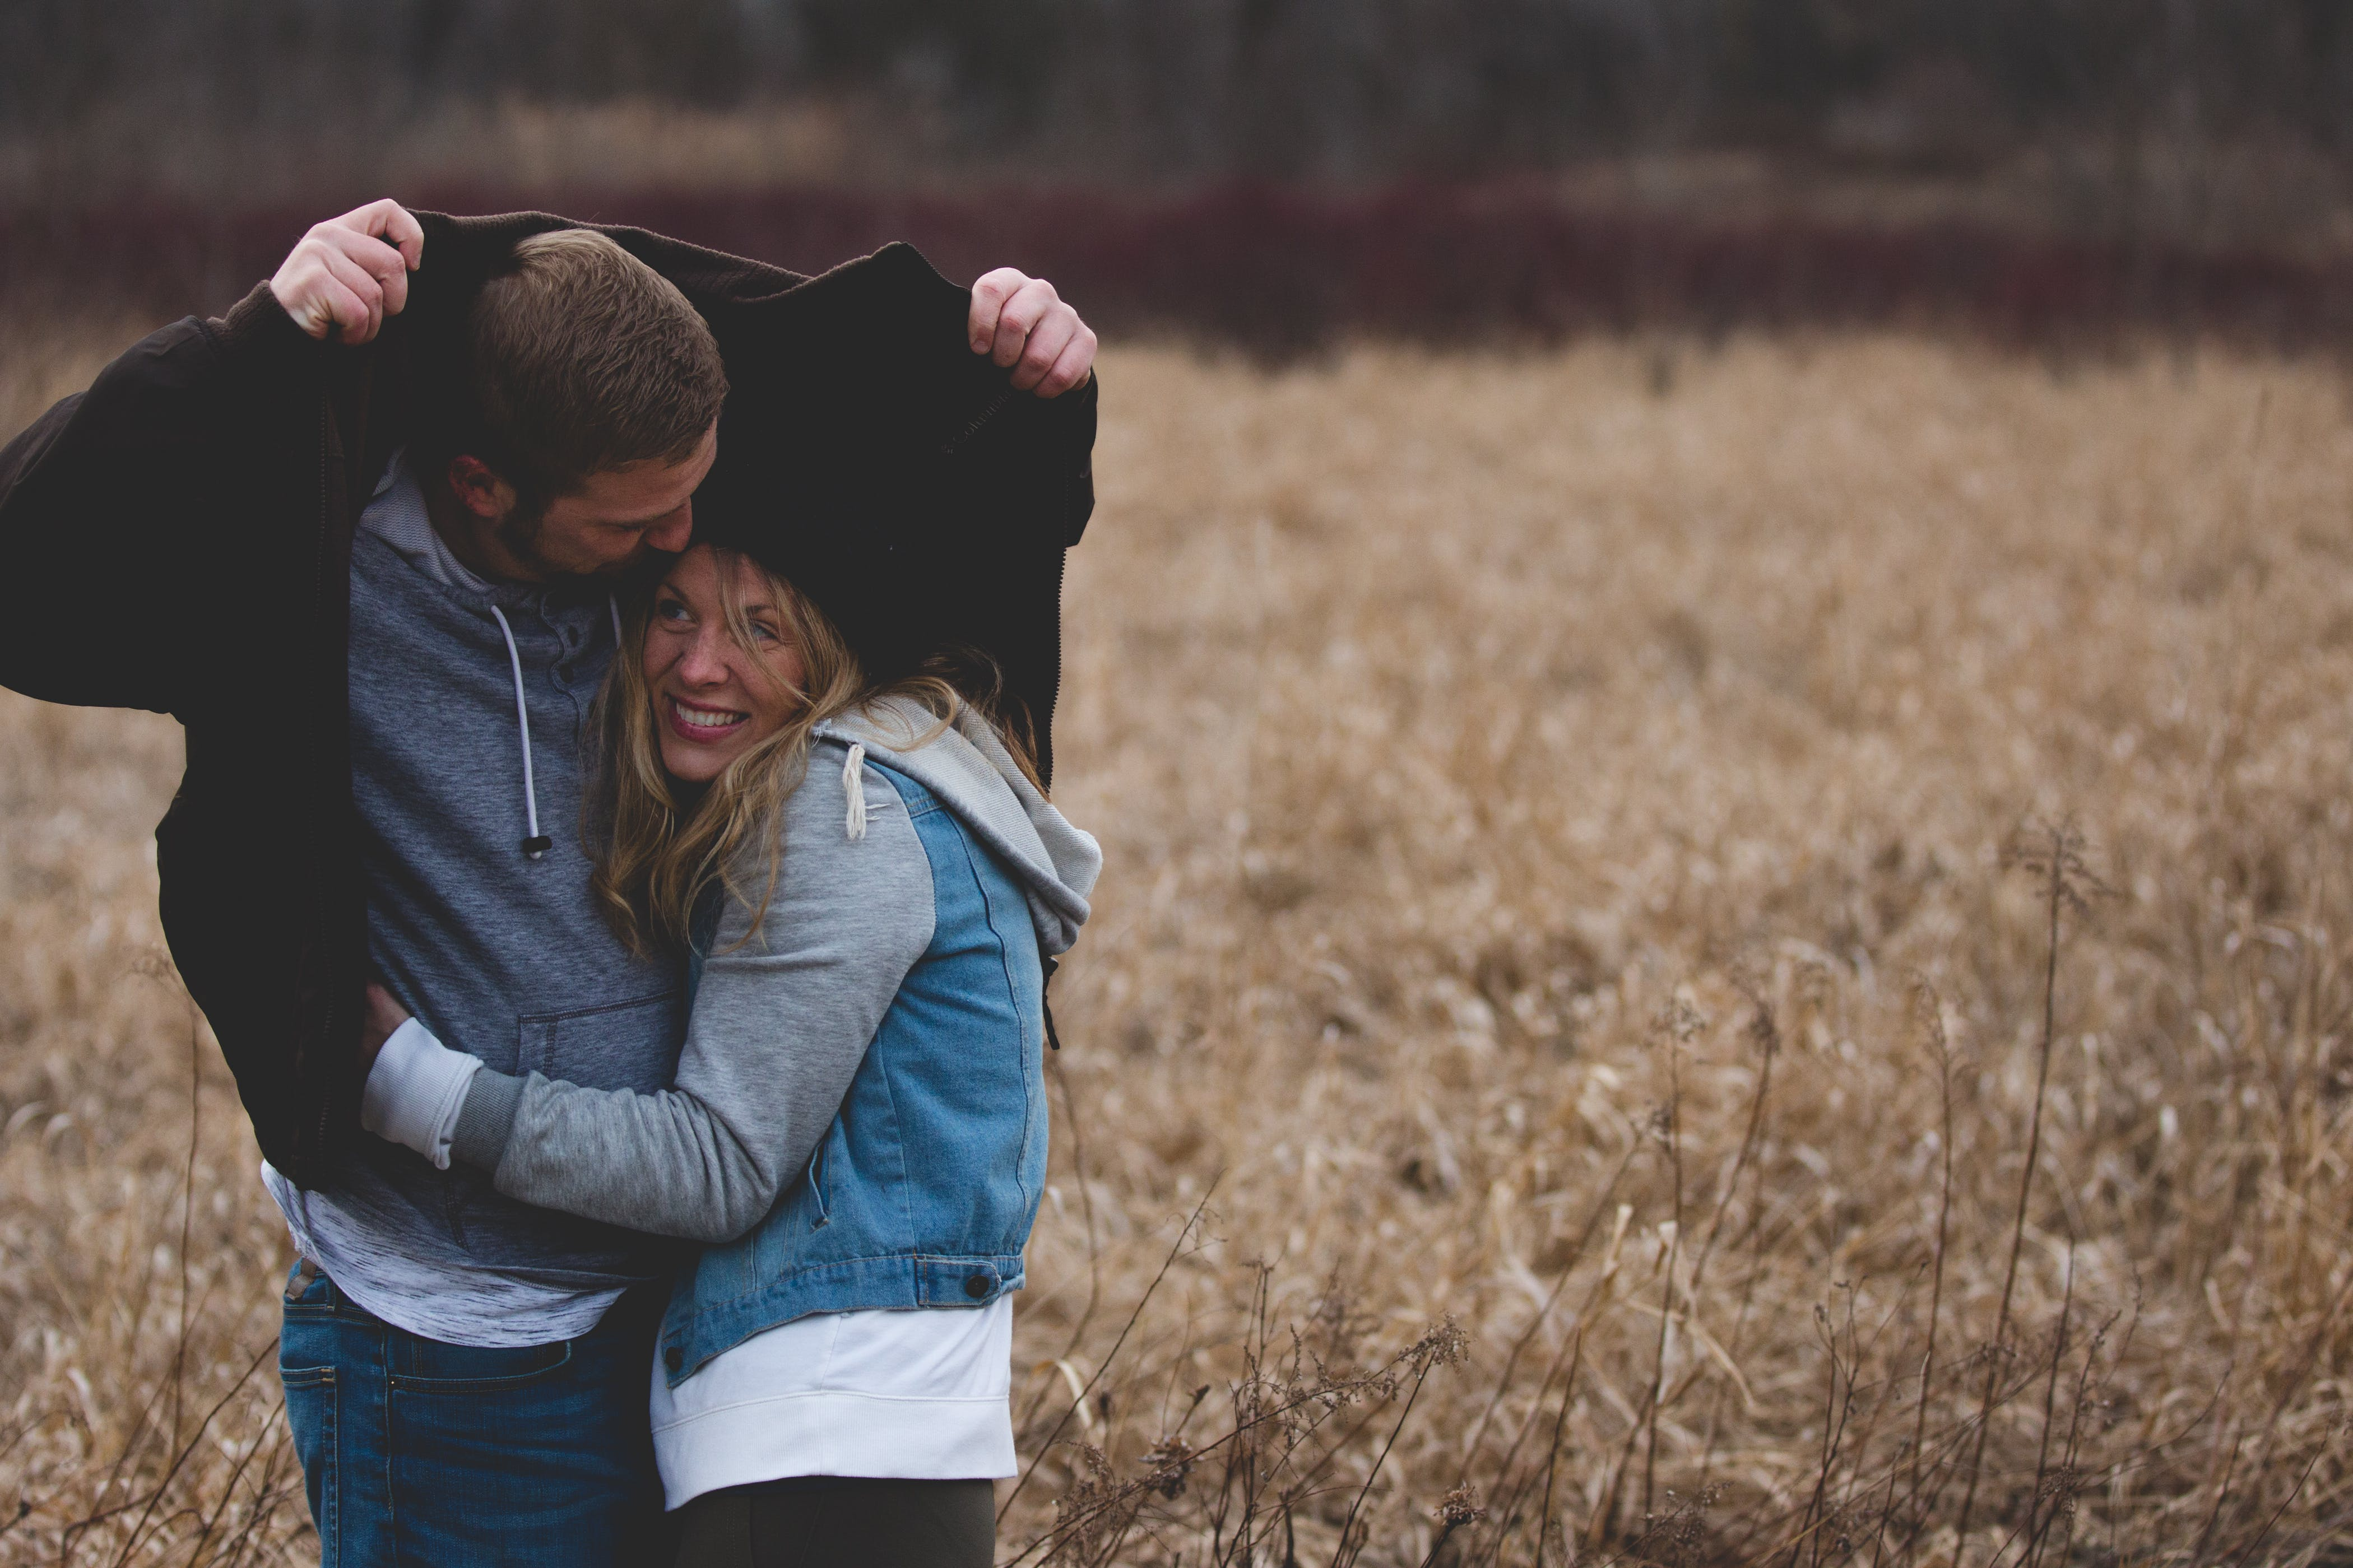 Keeping the Spark Going: 5 Tips On How to Spice Things Up In A Relationship